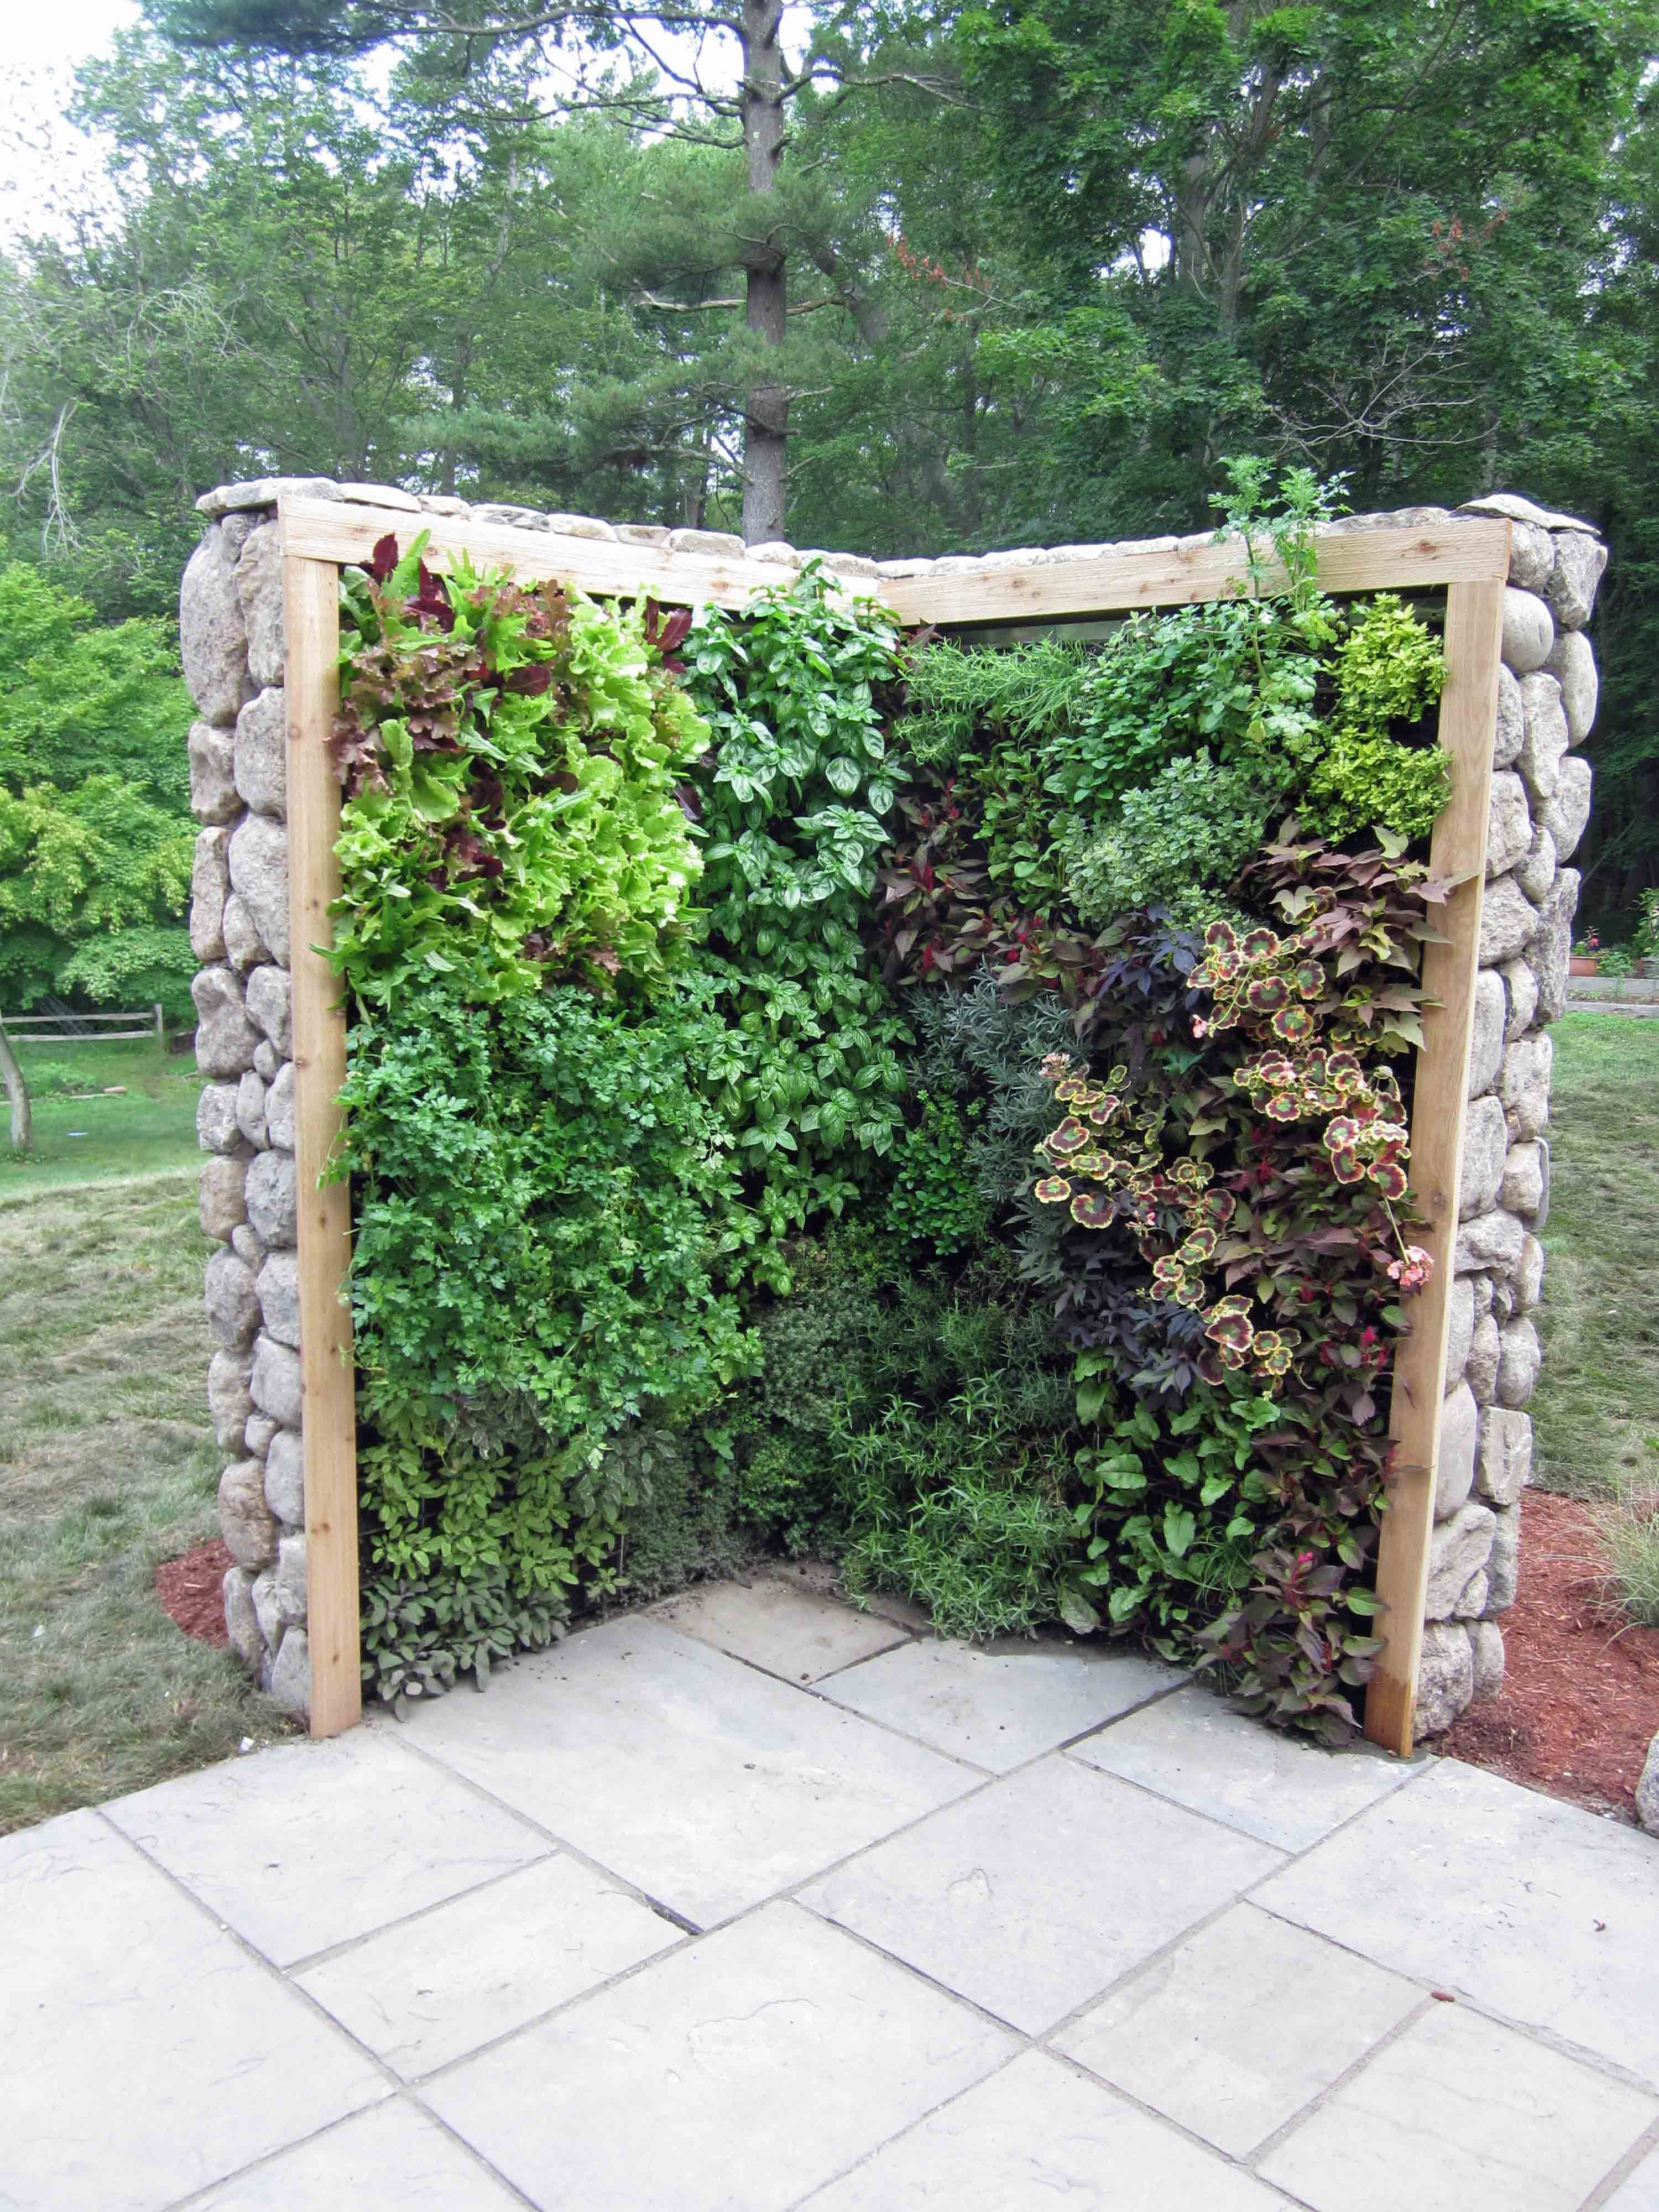 Mur Végétal Extérieur Hiver Herb Salad Wall Oh My I Want Patio Now Κήποι